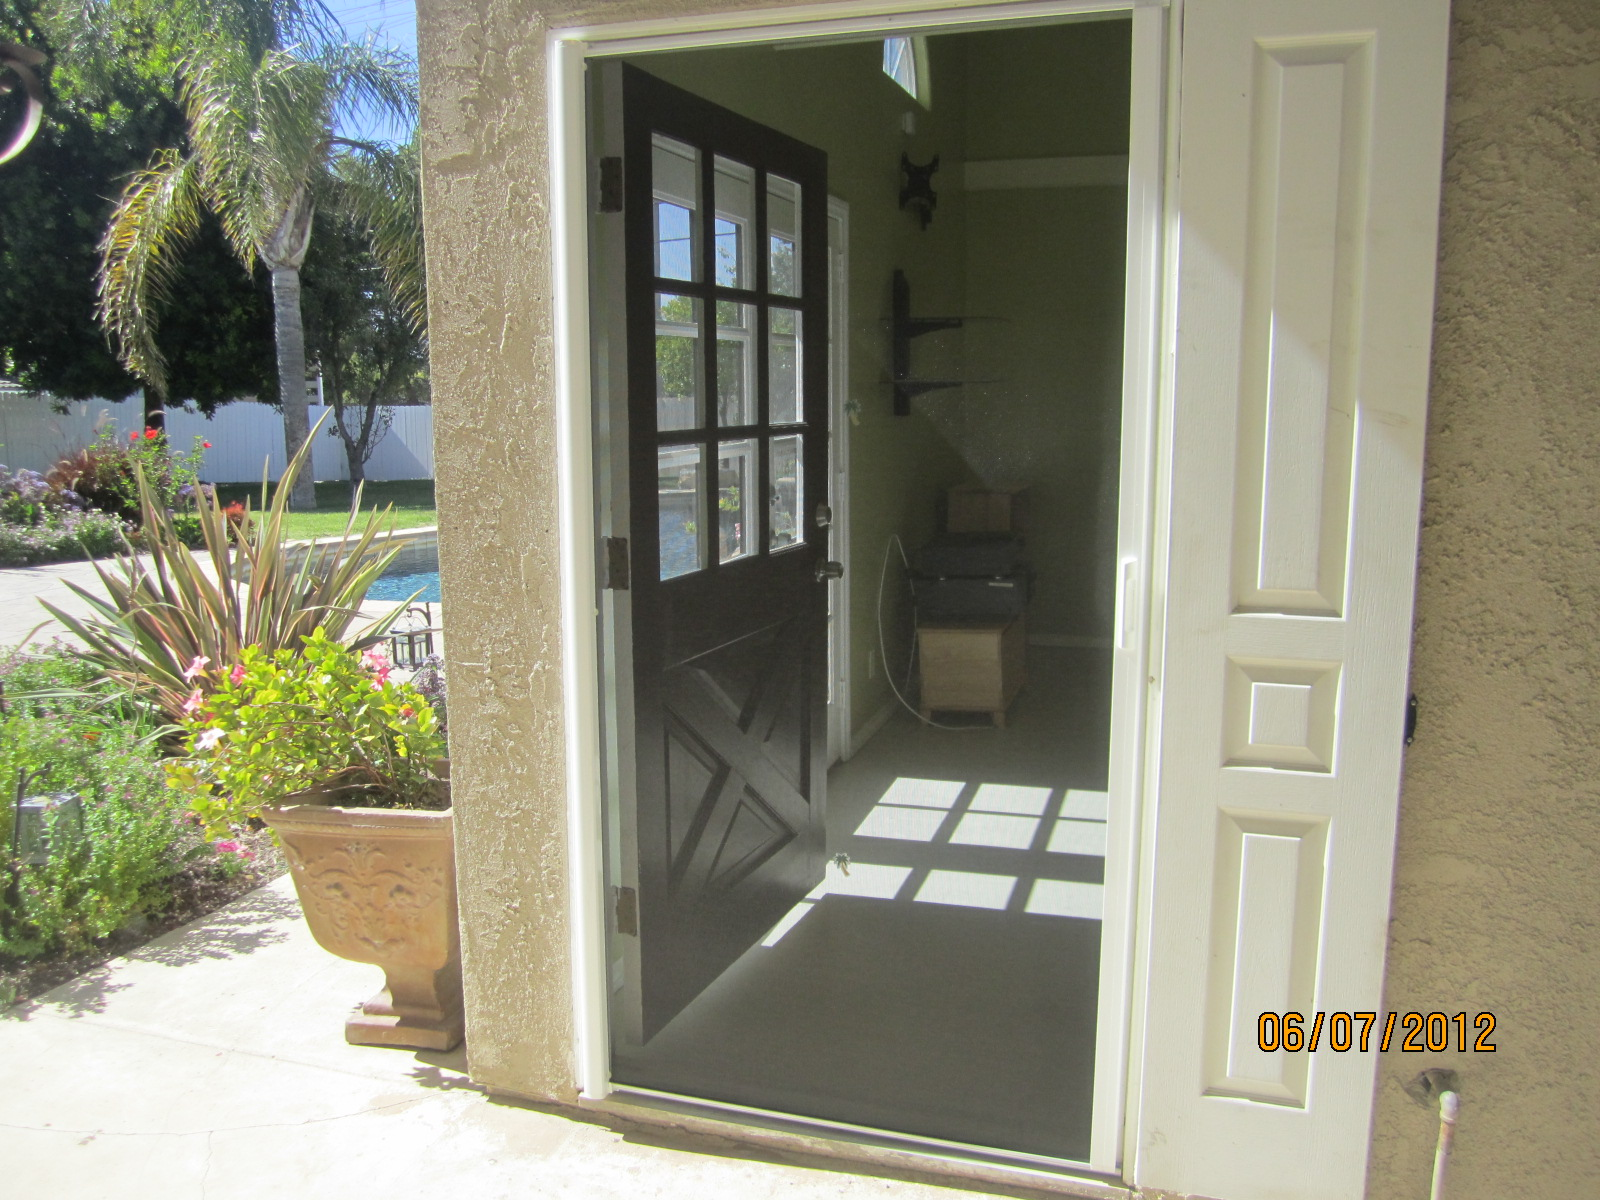 Exterior view retracted single retractable screen door for Andersen french door retractable screens